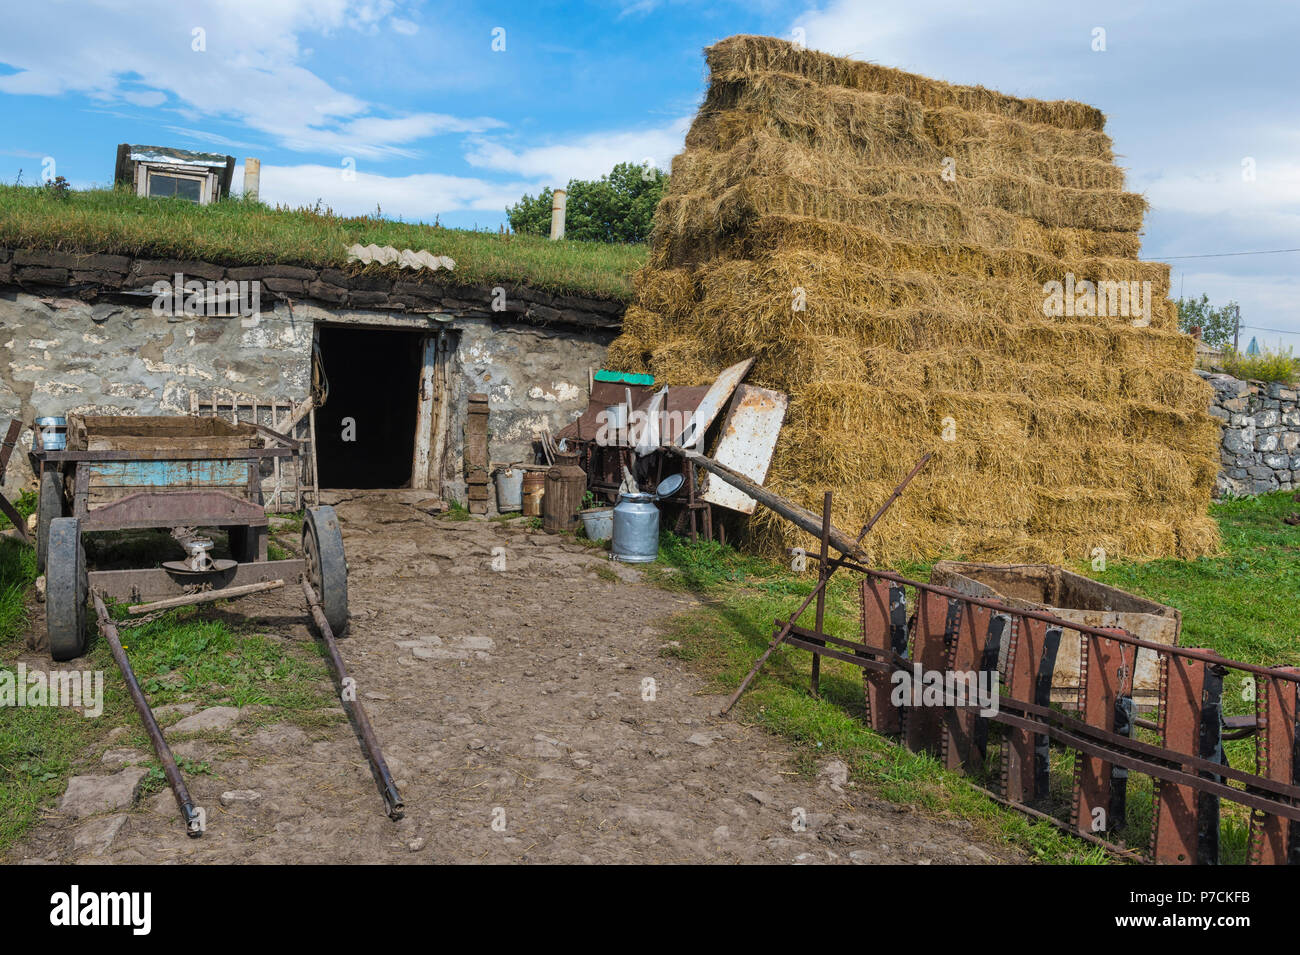 Old agricultural equipment, haystack and countryside house, Bokdajeni village, Georgia - Stock Image